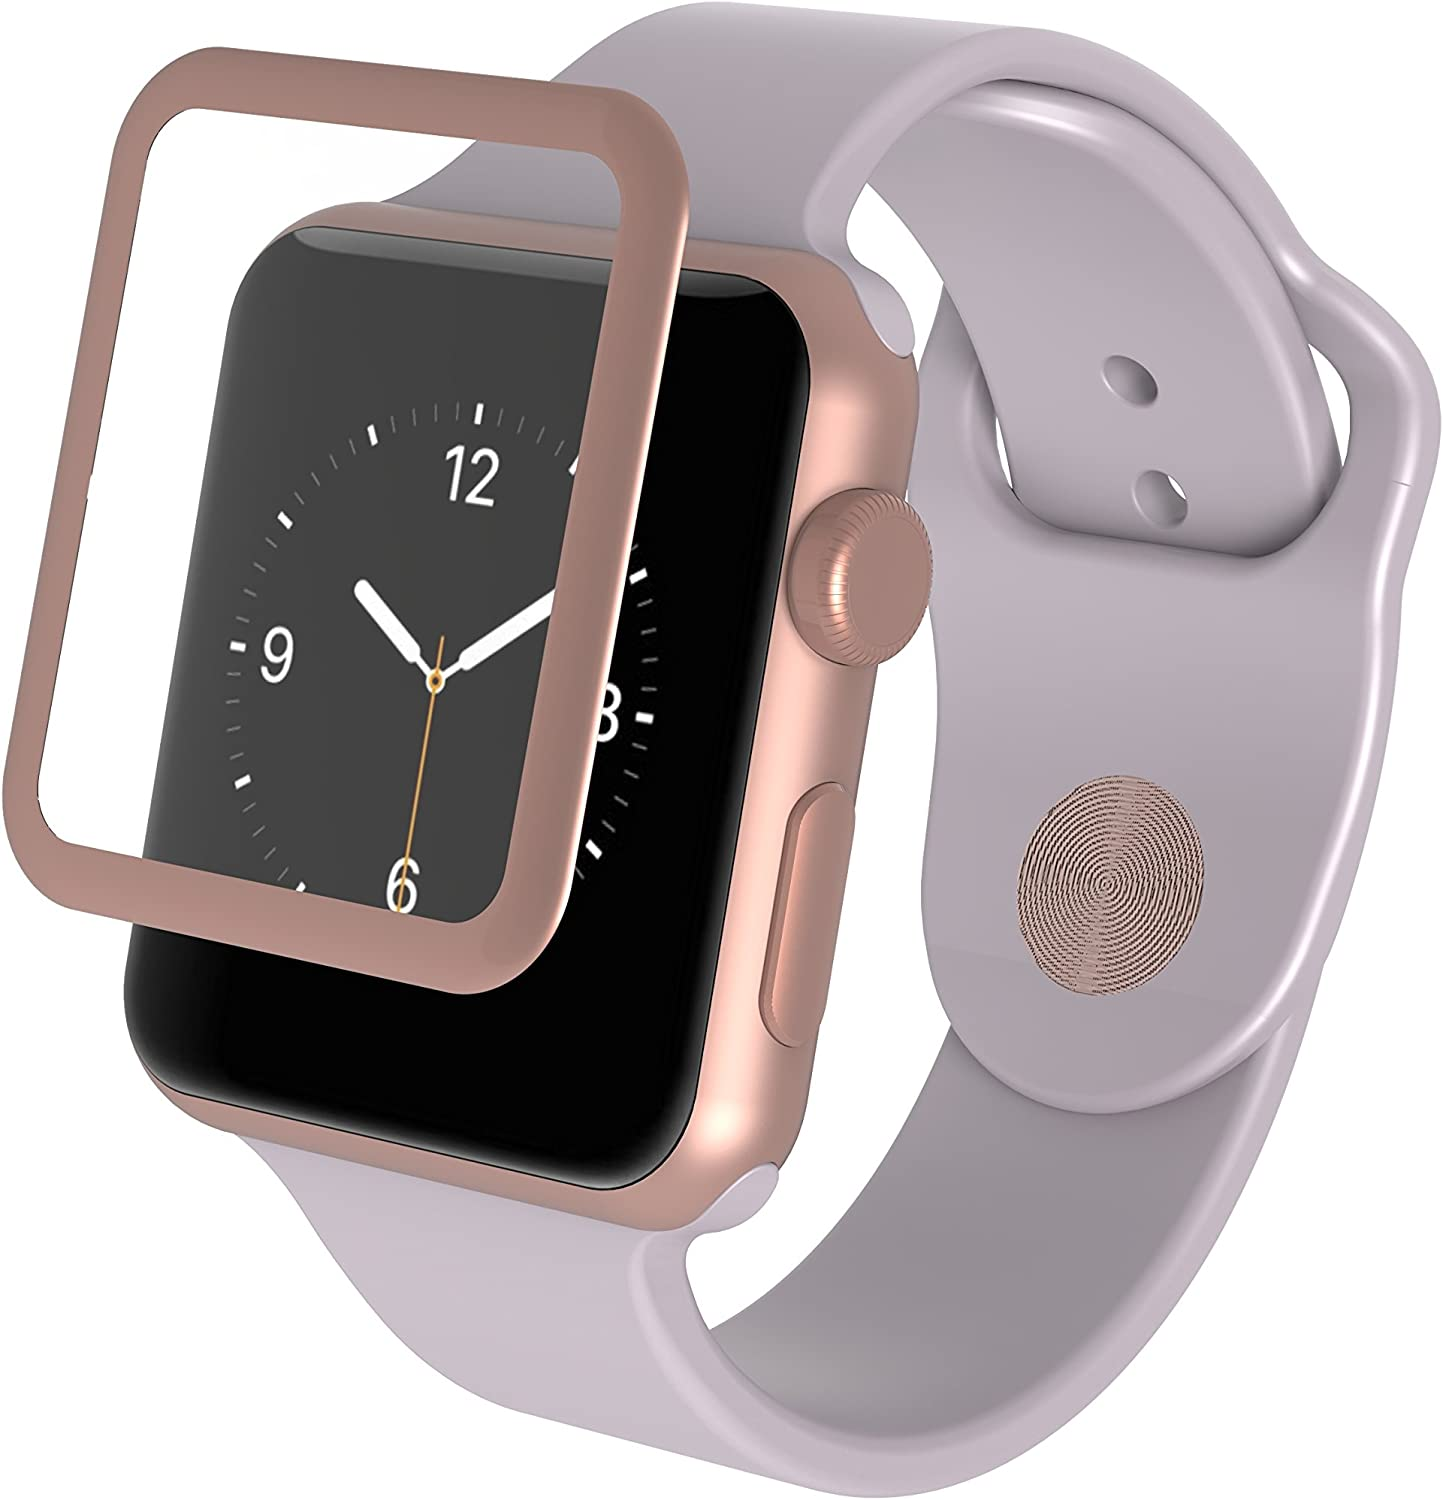 ZAGG InvisibleShield Luxe Screen Protector for Apple Watch Series 2 (38mm) - Rose Gold